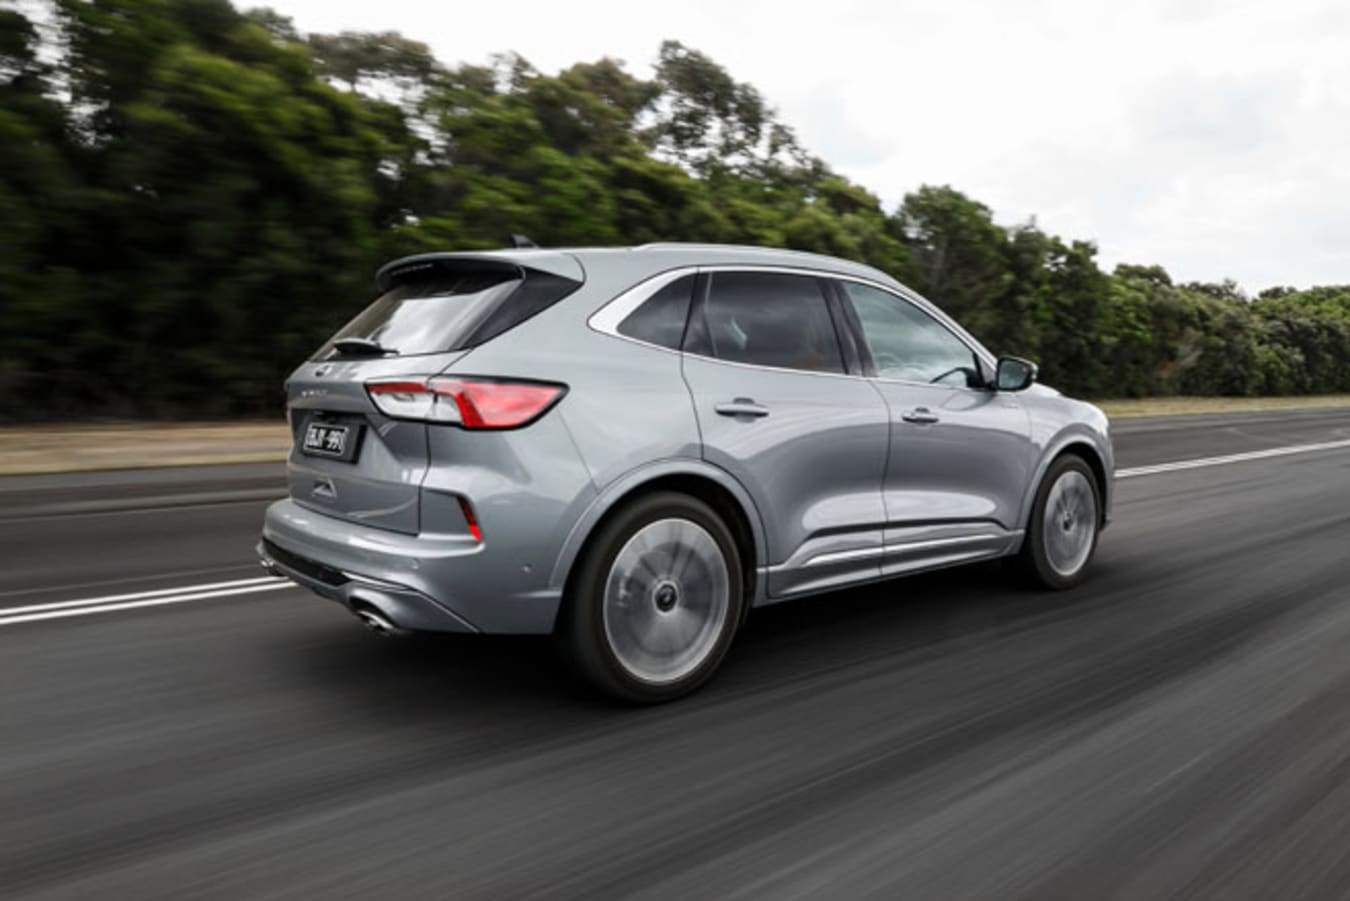 Ford Escape at Car of the Year 2021